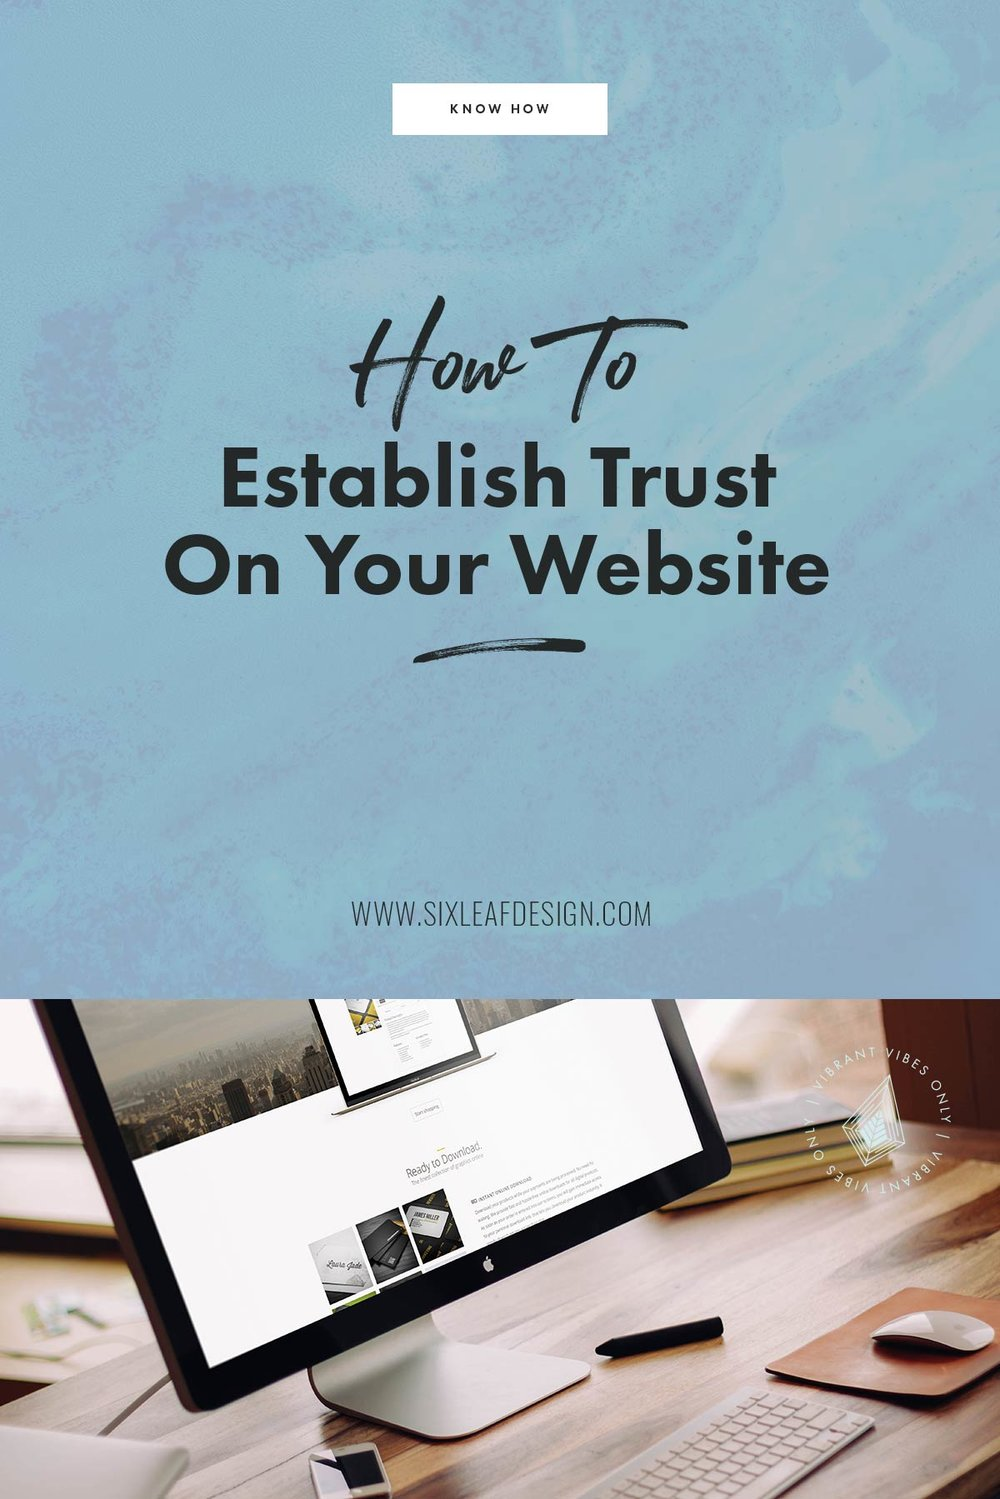 How to Establish Trust on Your Website